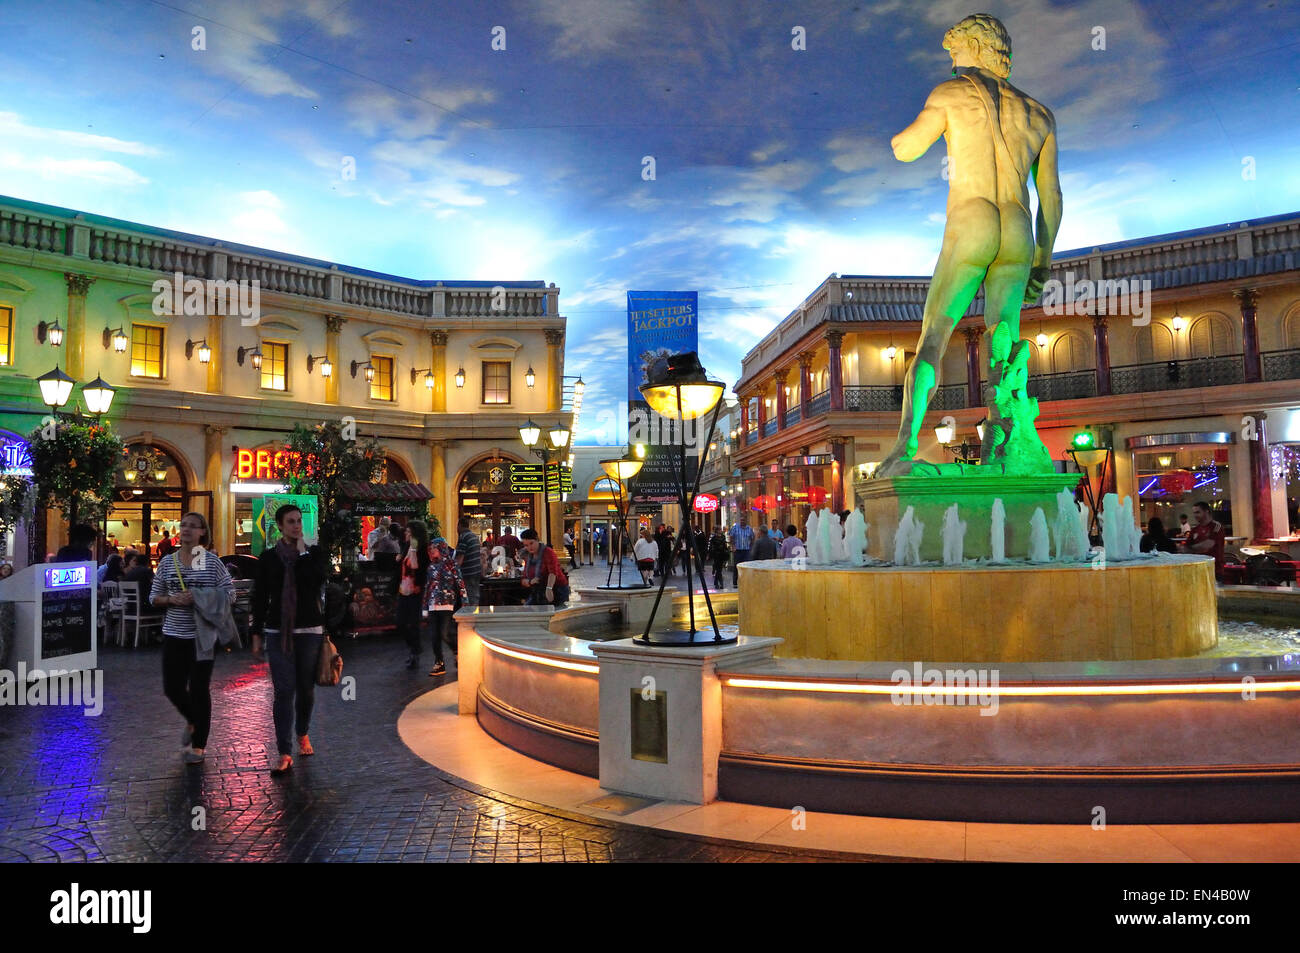 Piazza Navona Food Court at The Emperors Palace Hotel, Kempton Park, Johannesburg, Gauteng Province, Republic of - Stock Image